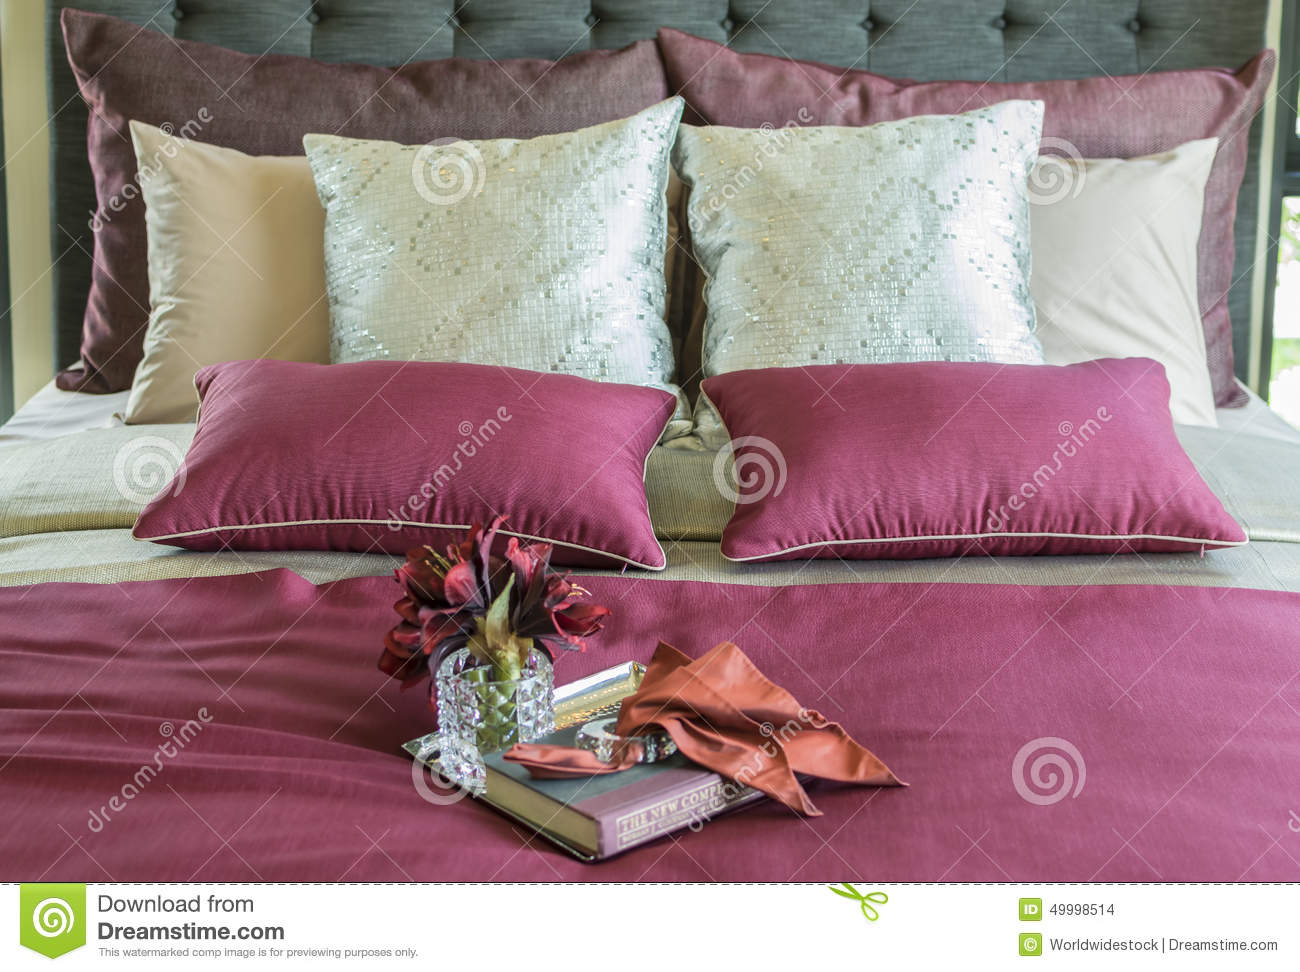 Colorful Pillow And Decorative Tray On The Bed Stock Photo - Image: 49998514